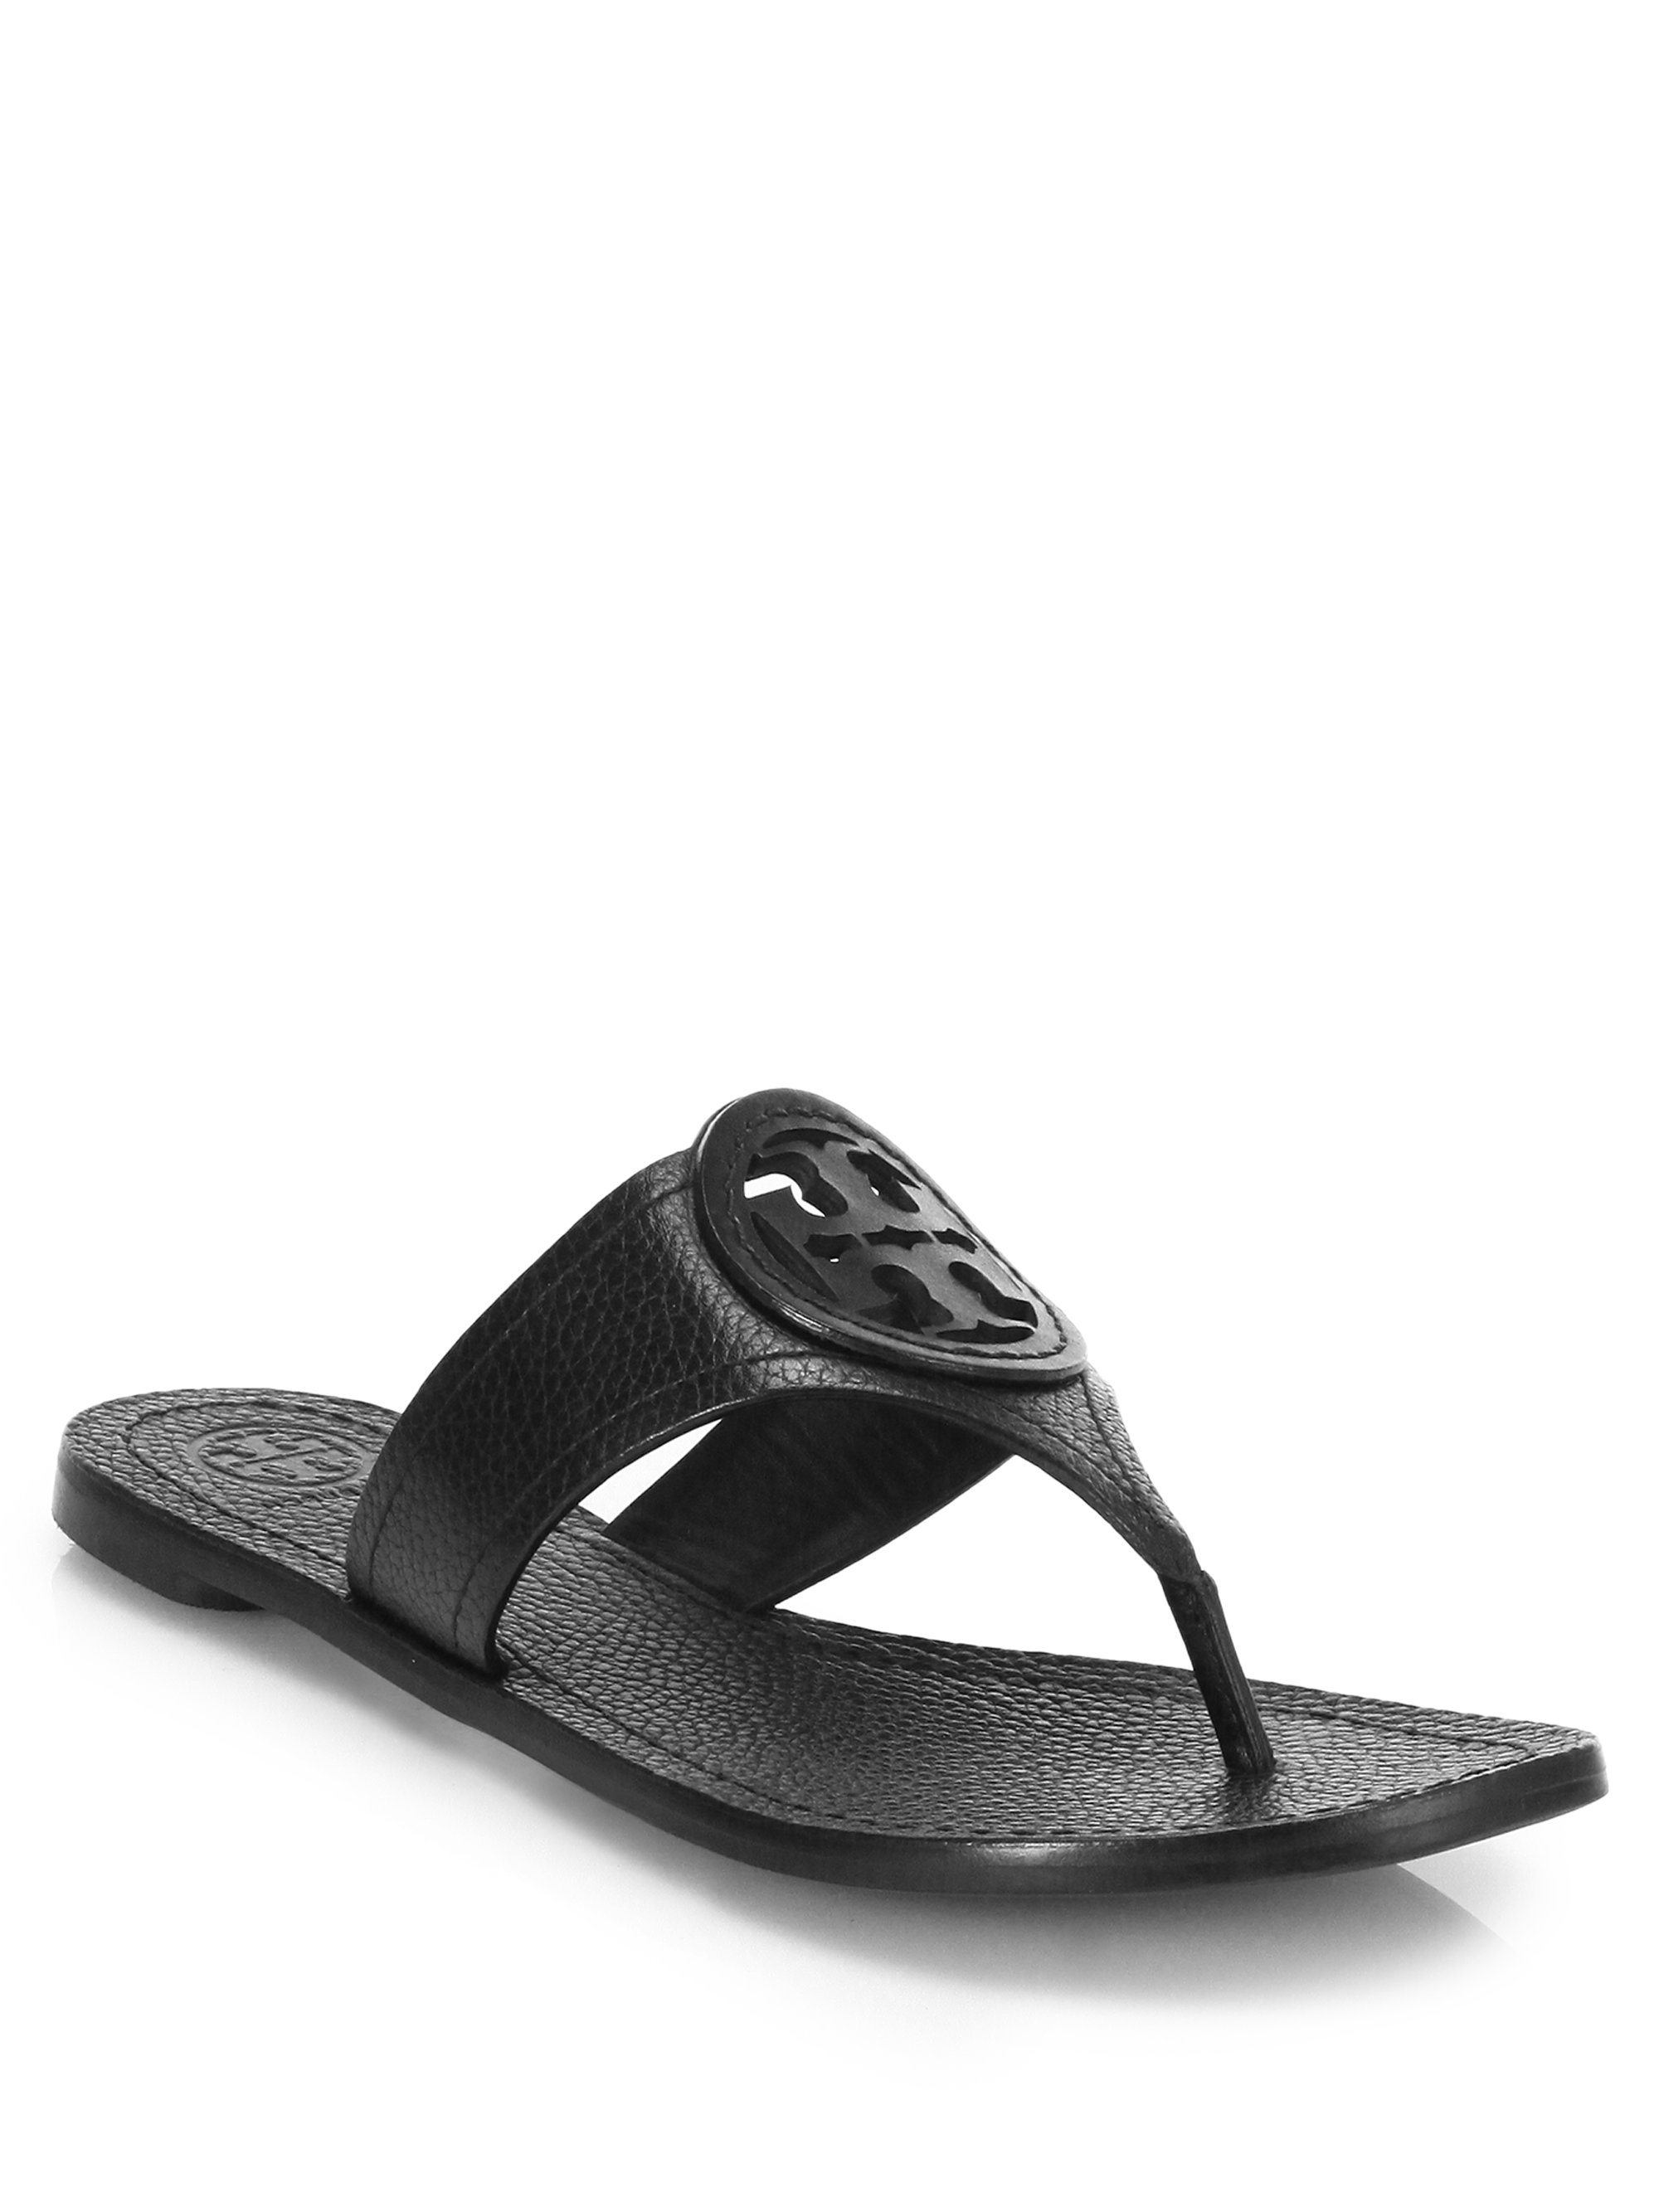 bf223042d Lyst - Tory Burch Louisa Leather Thong Sandal in Black